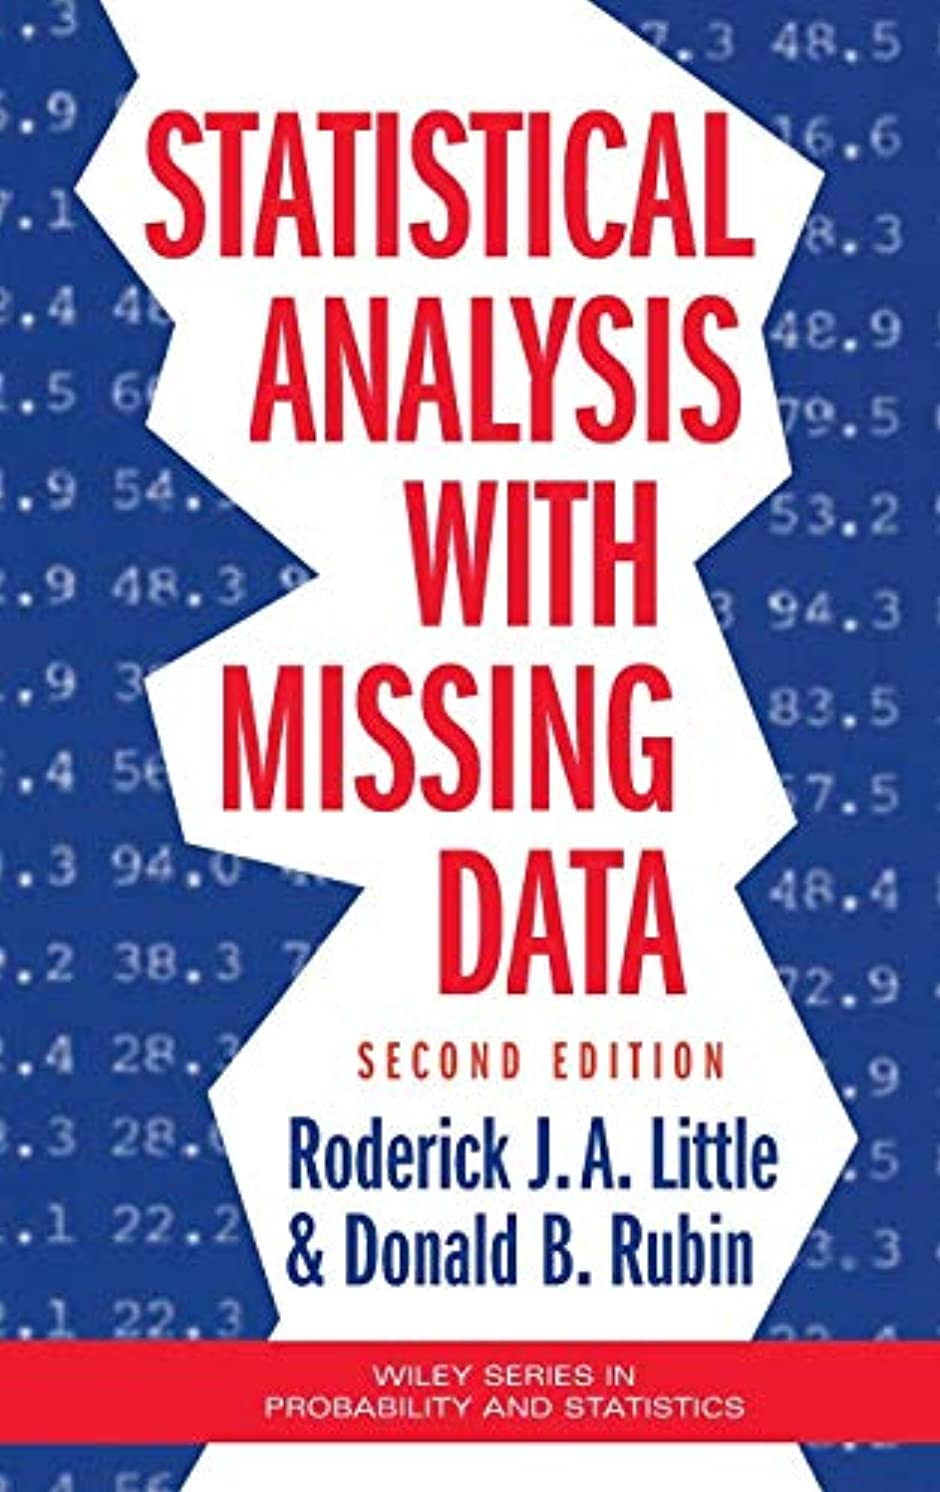 滑りやすい泥棒宇宙船Statistical Analysis with Missing Data (Wiley Series in Probability and Statistics)